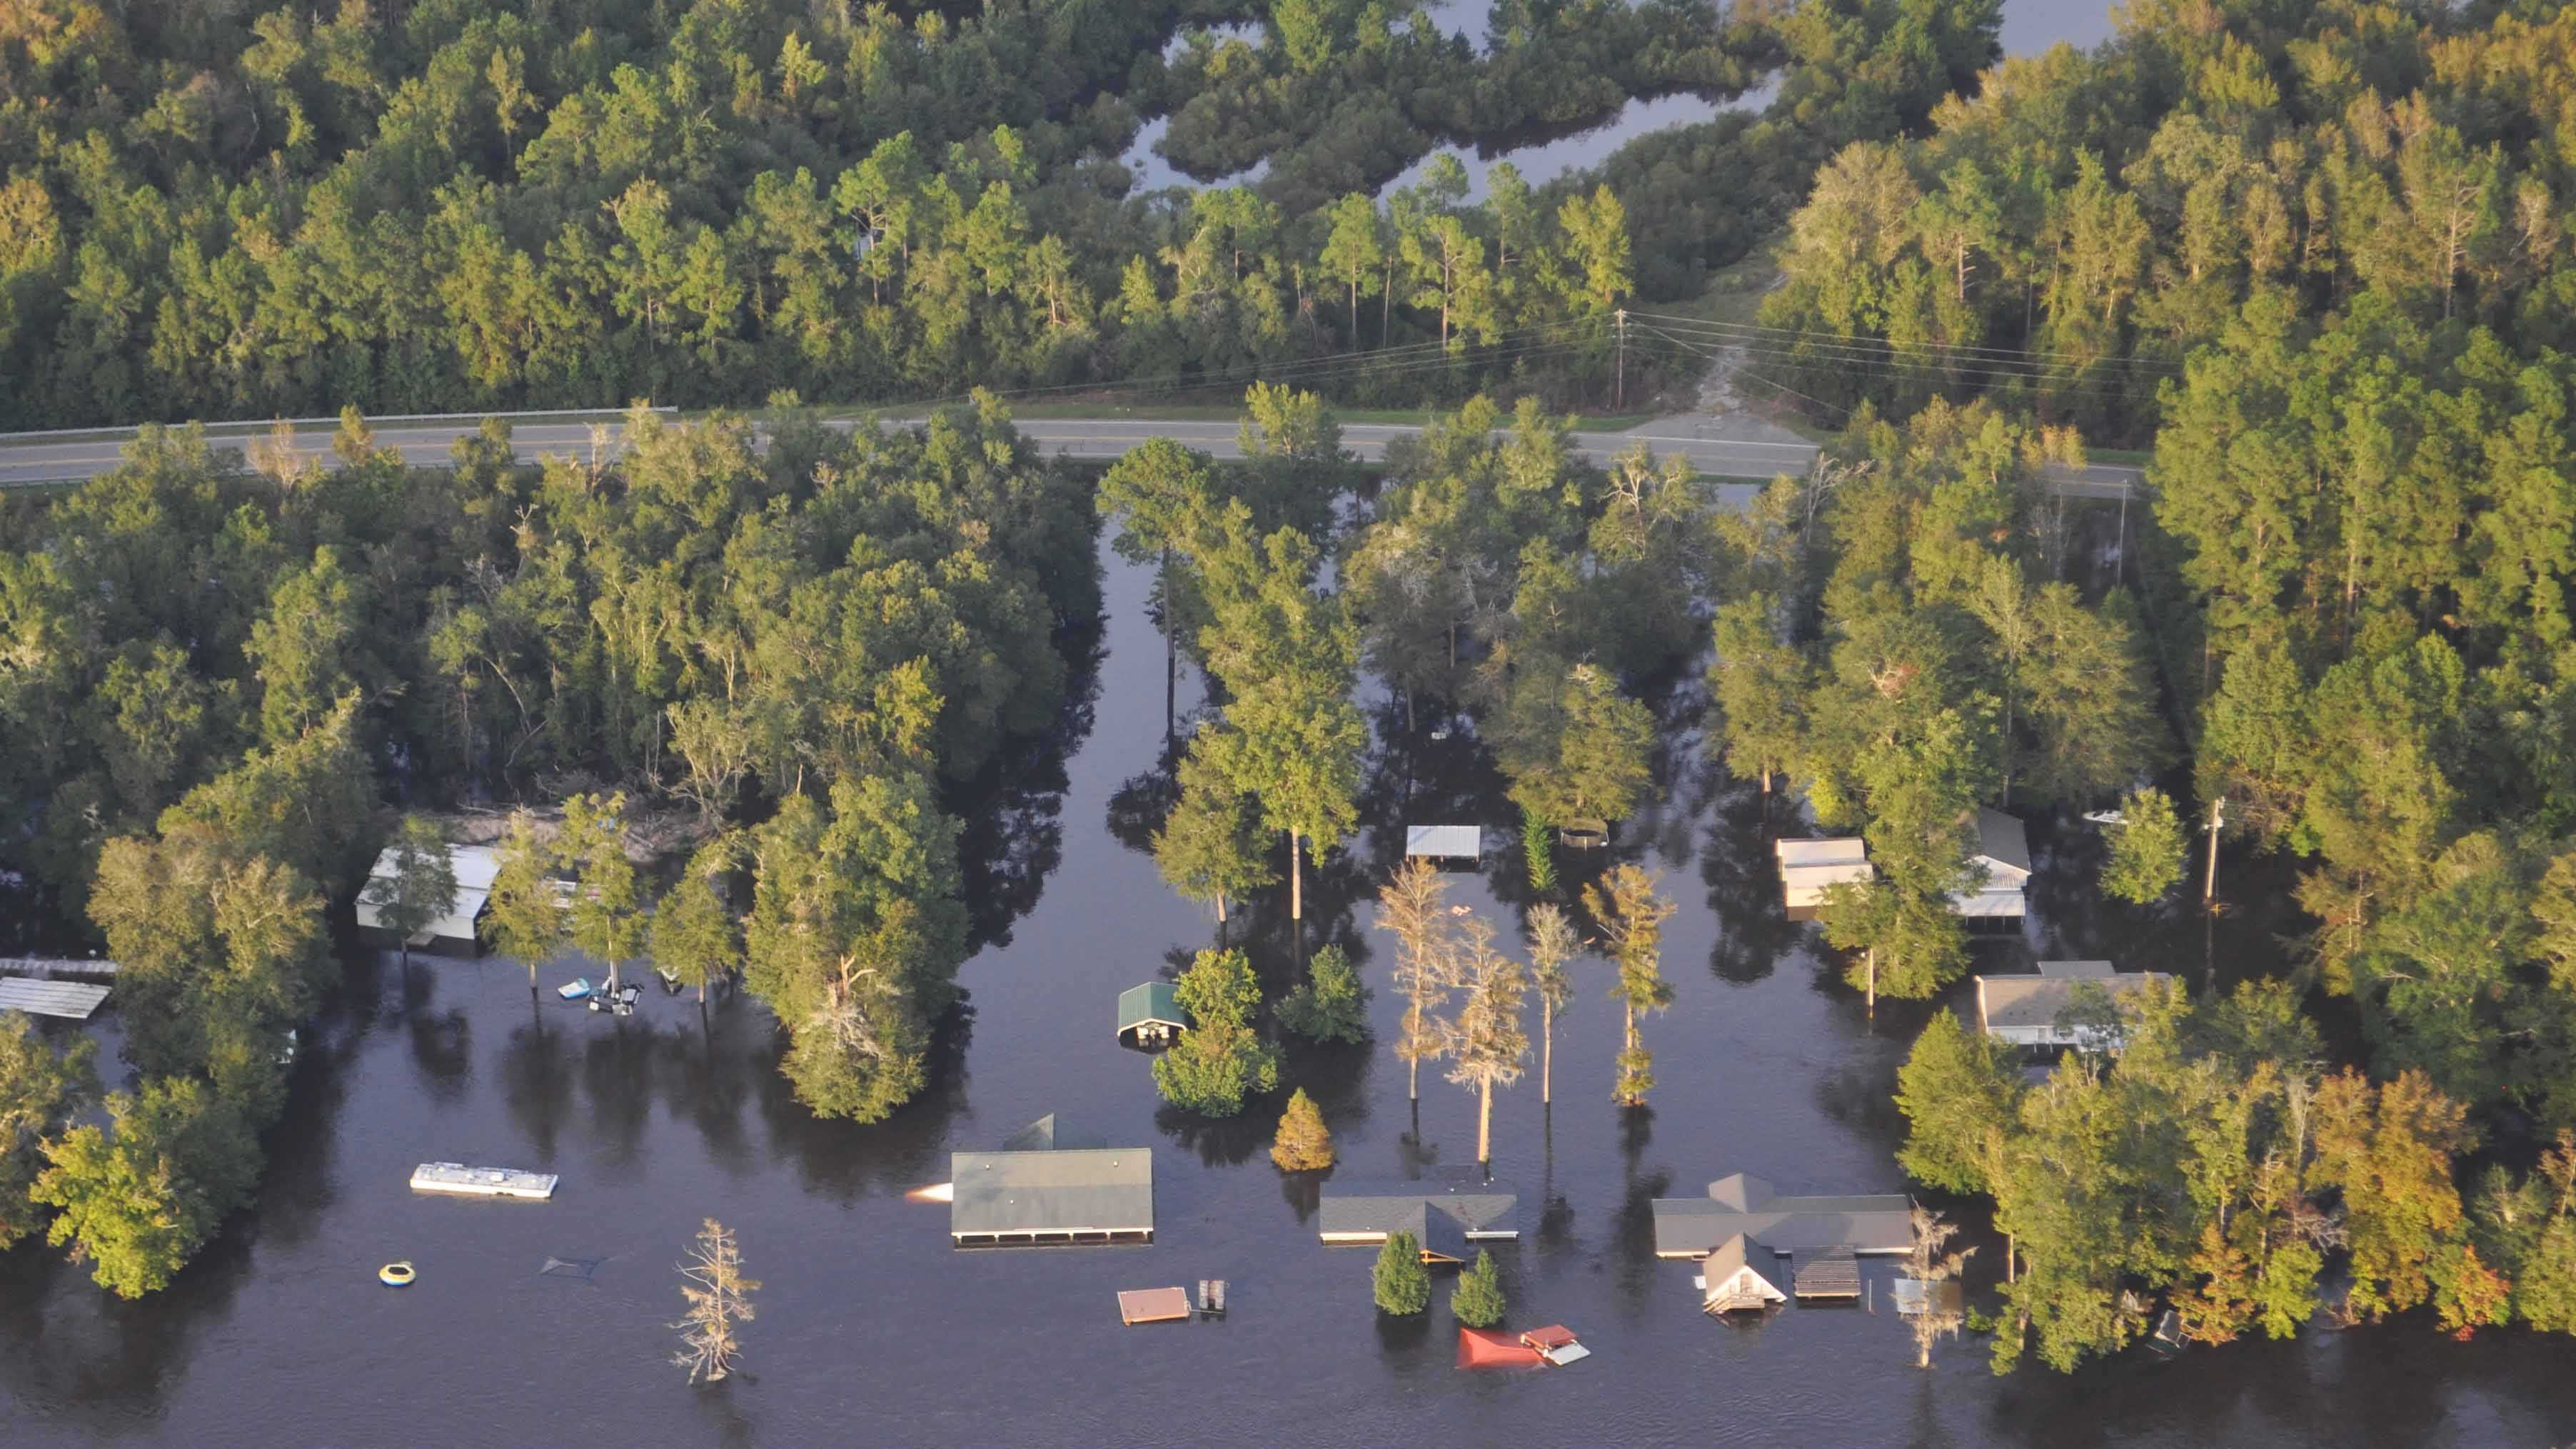 CAP aerial image of flooding in South Carolina.